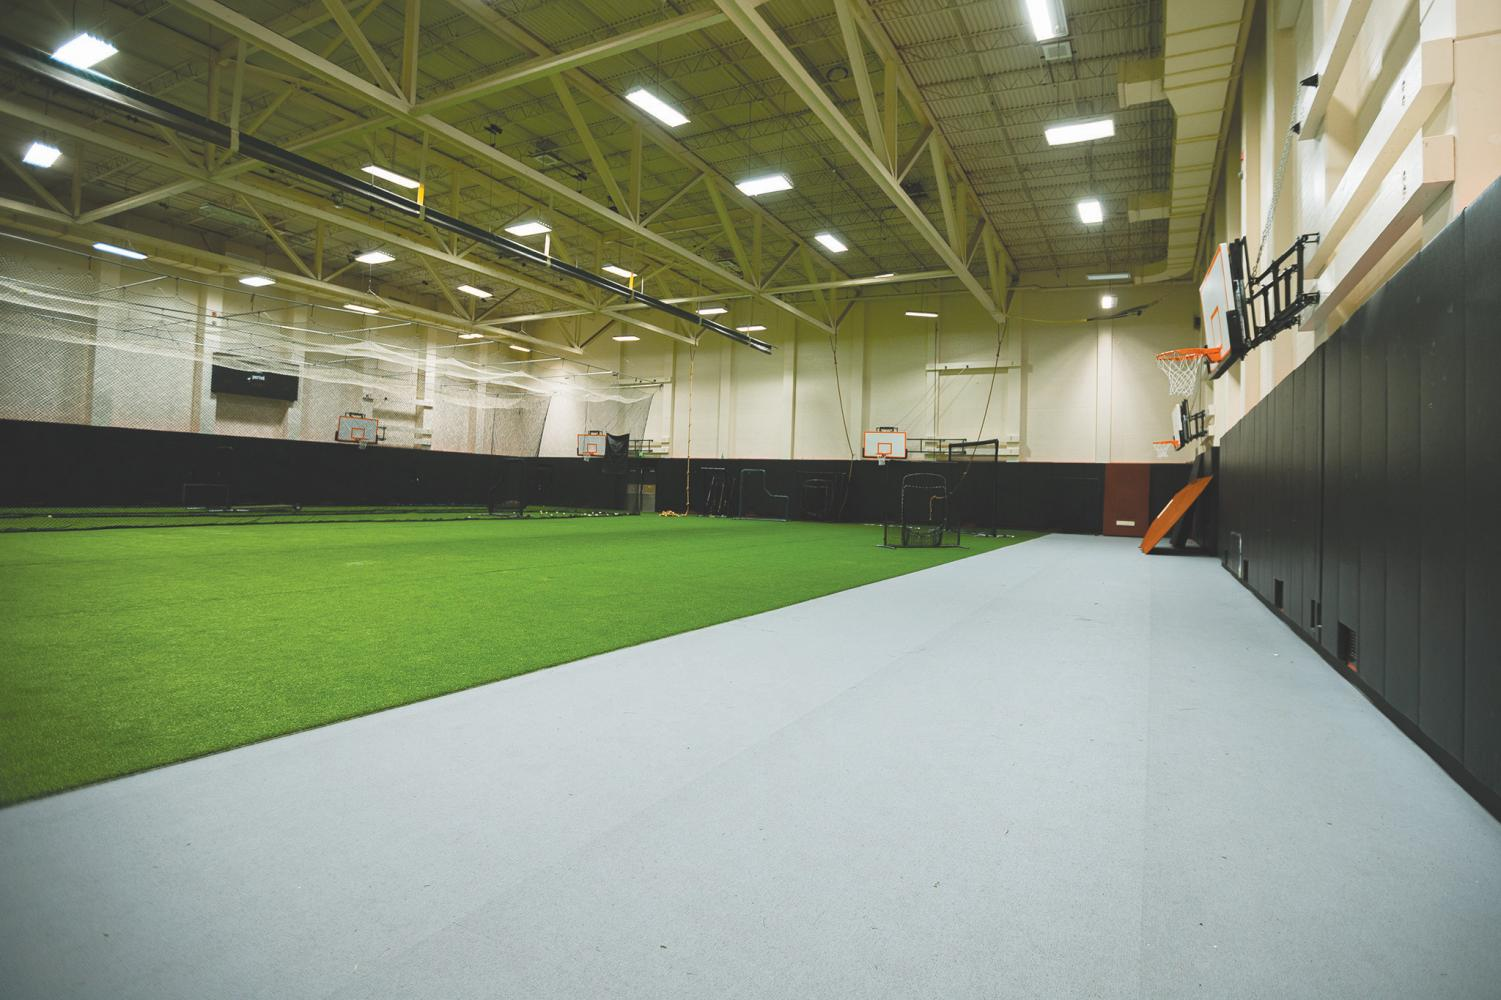 With loss of access to the South Court facilities in the Redhawk Center, students struggle to accept the Astroturf Gym as their new recreation area.